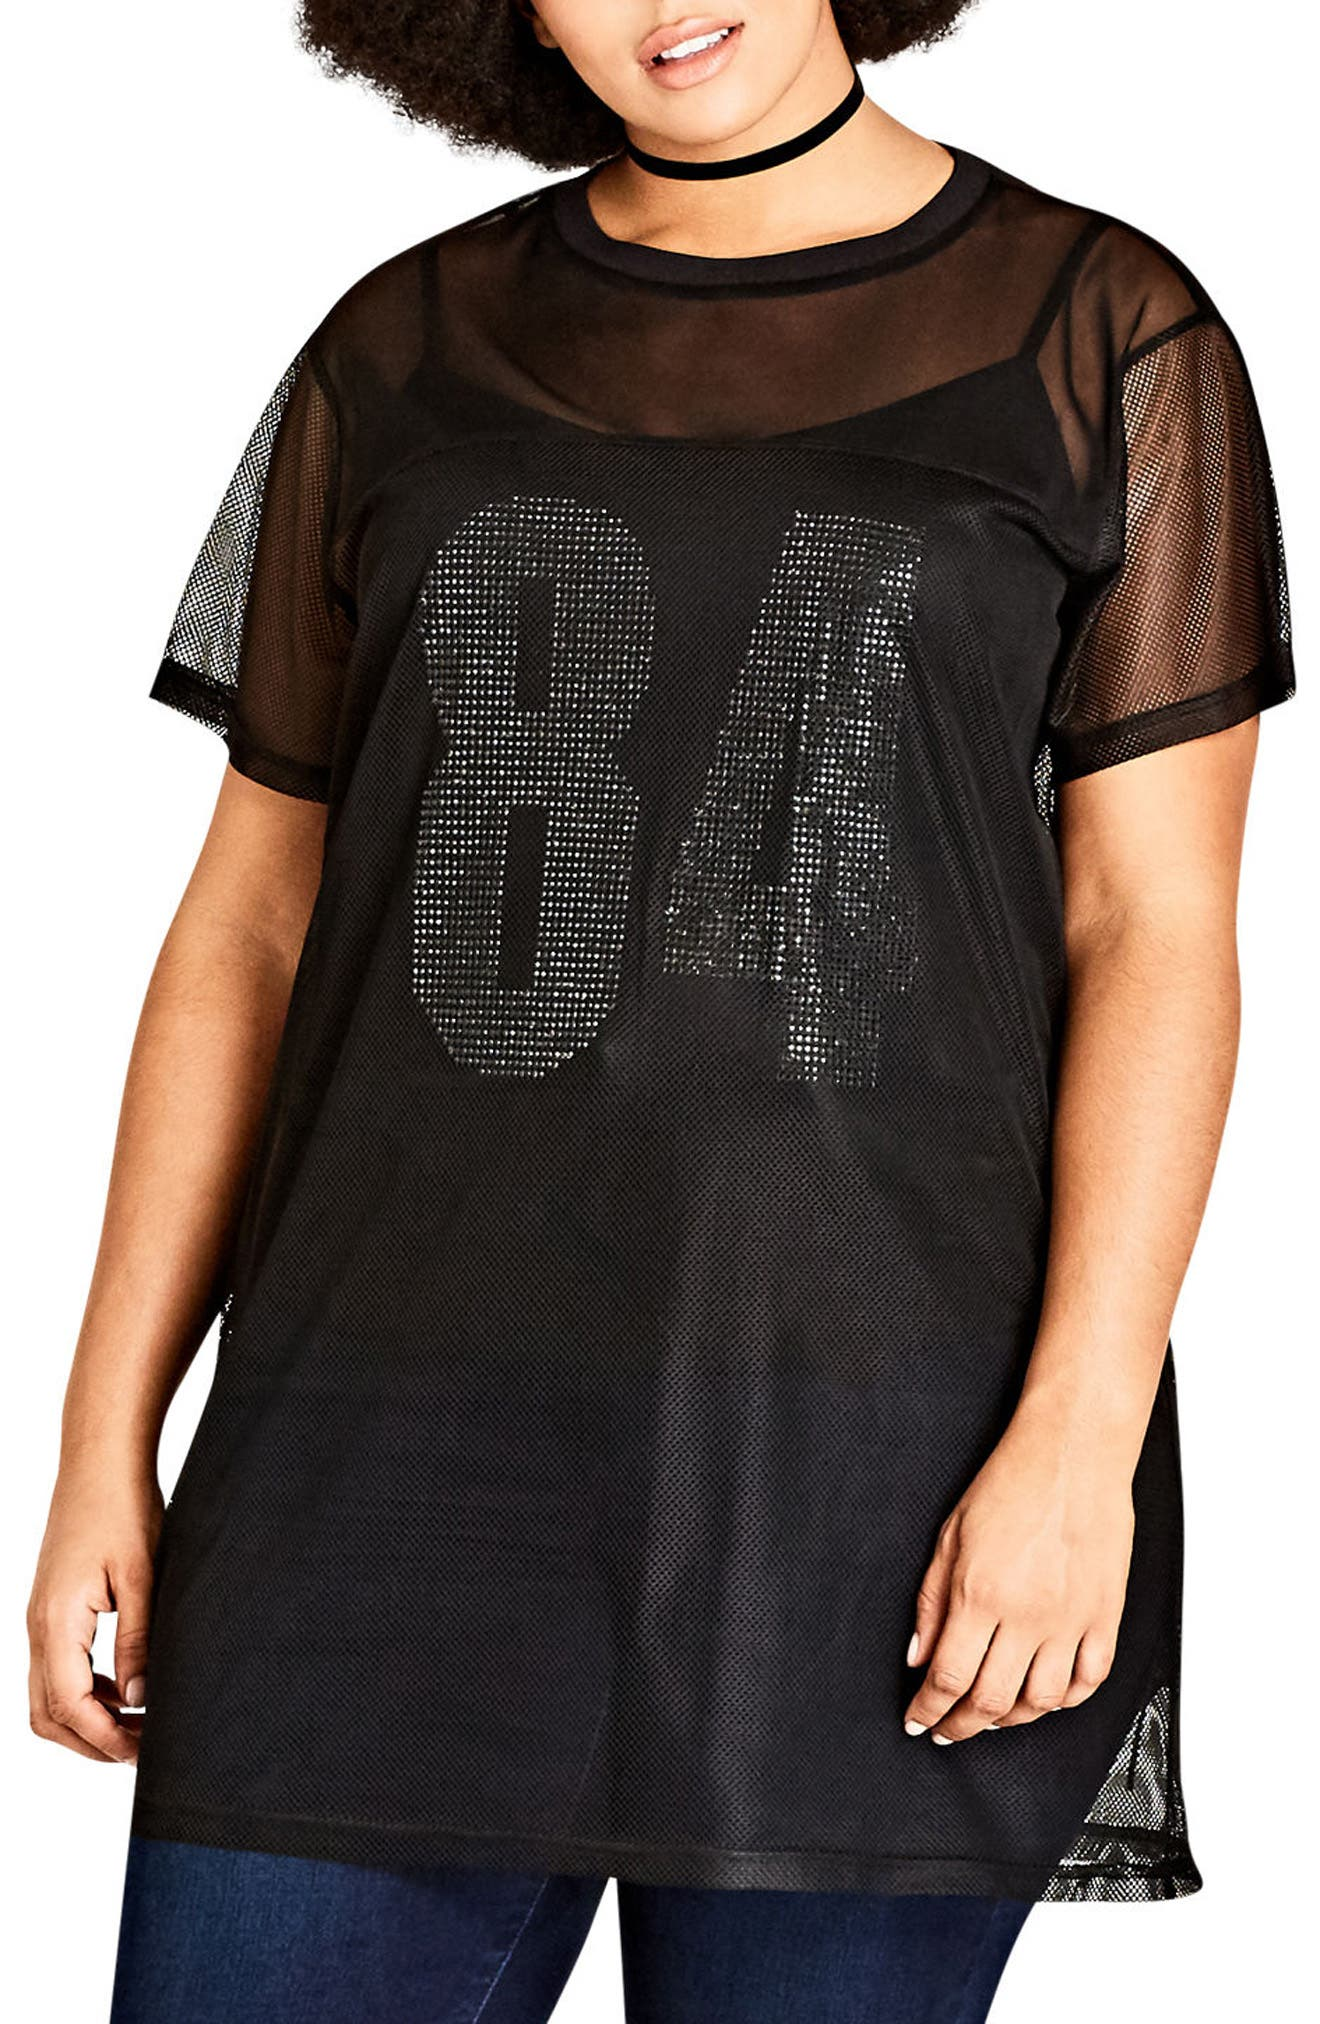 Main Image - City Chic Numbers Up Longline Mesh Top (Plus Size)